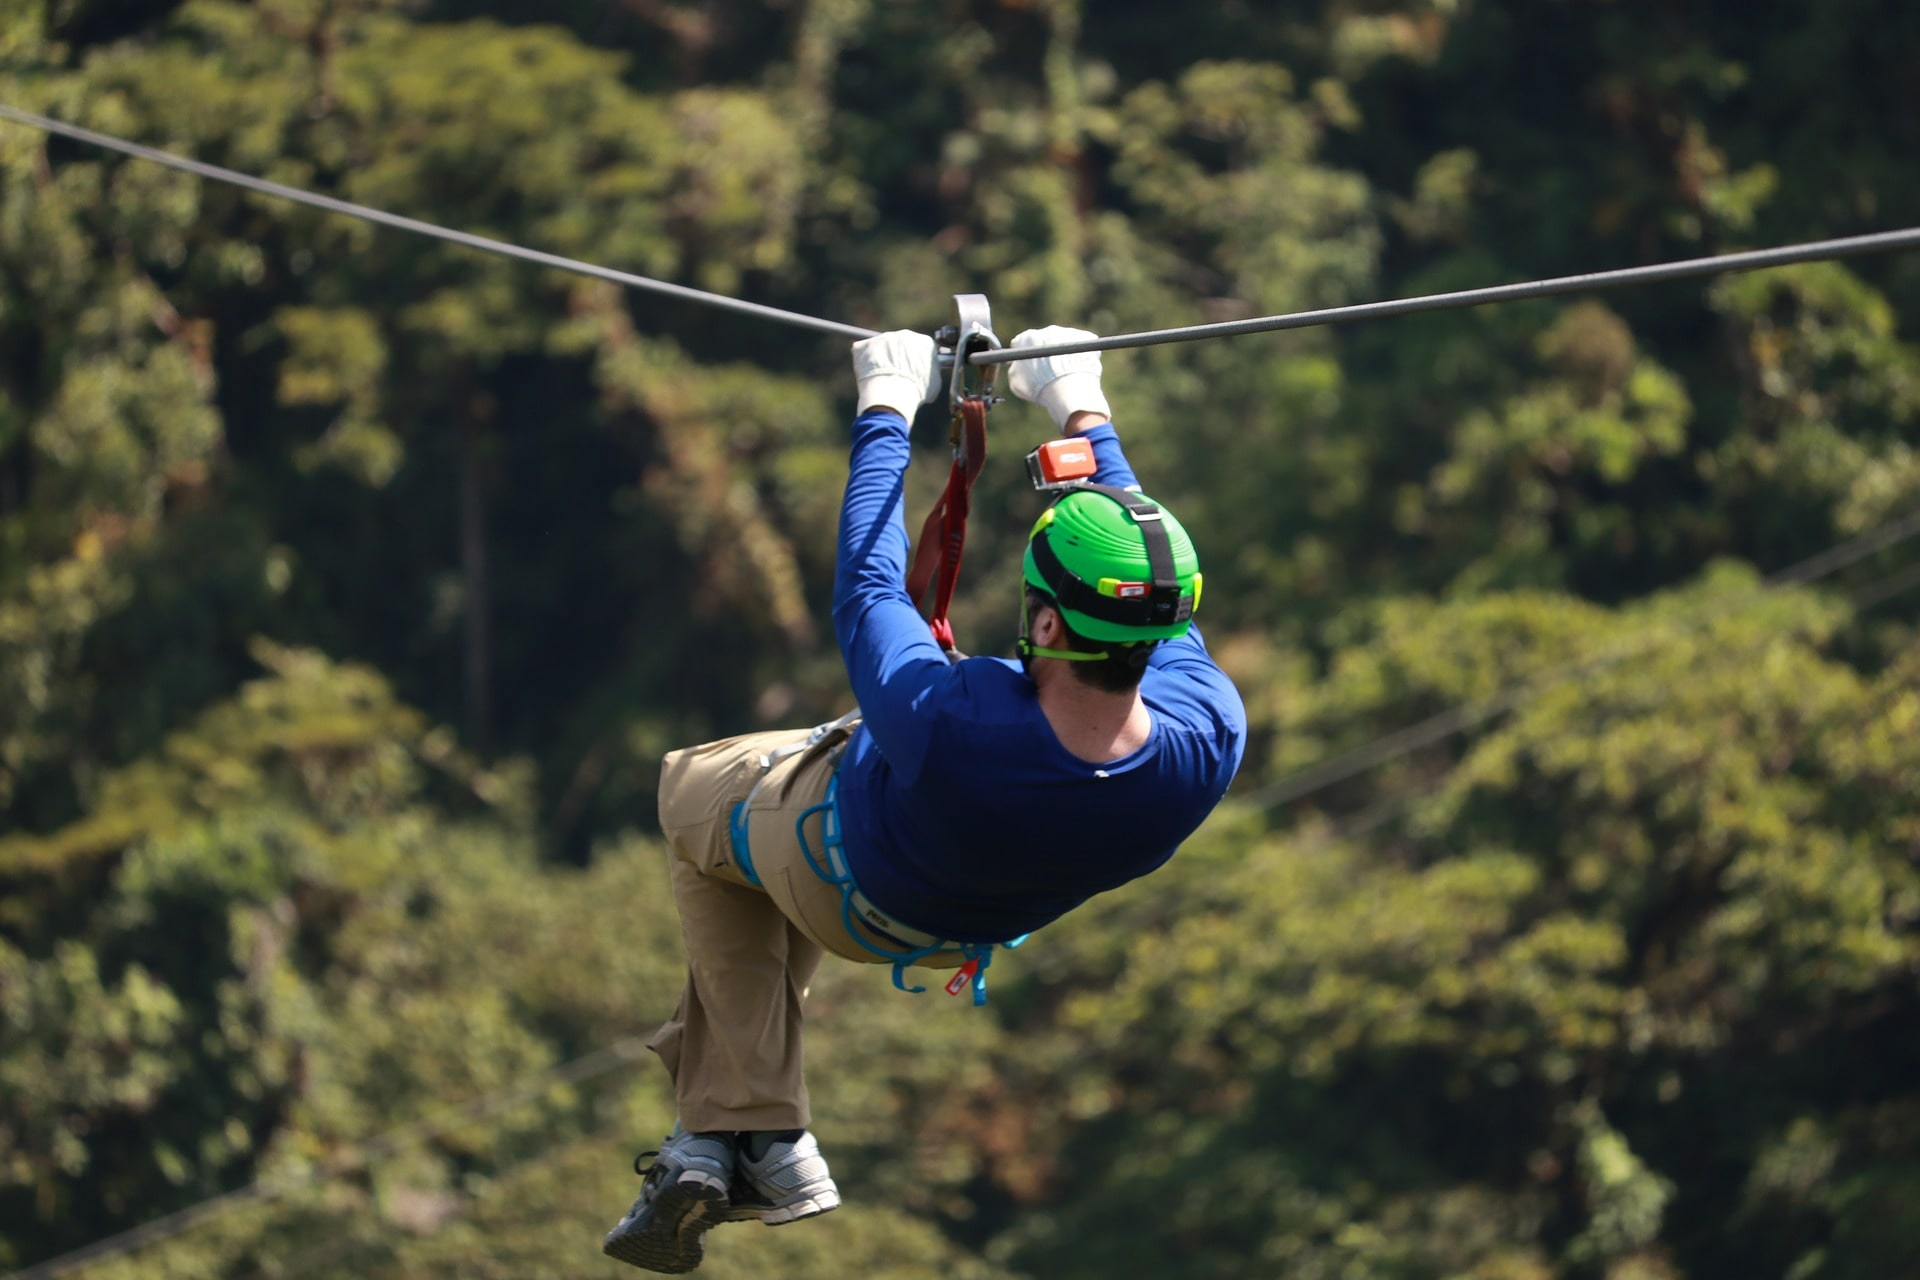 The zipline at Toro Verde Adventure Park is an awesome point of interest in Puerto Rico